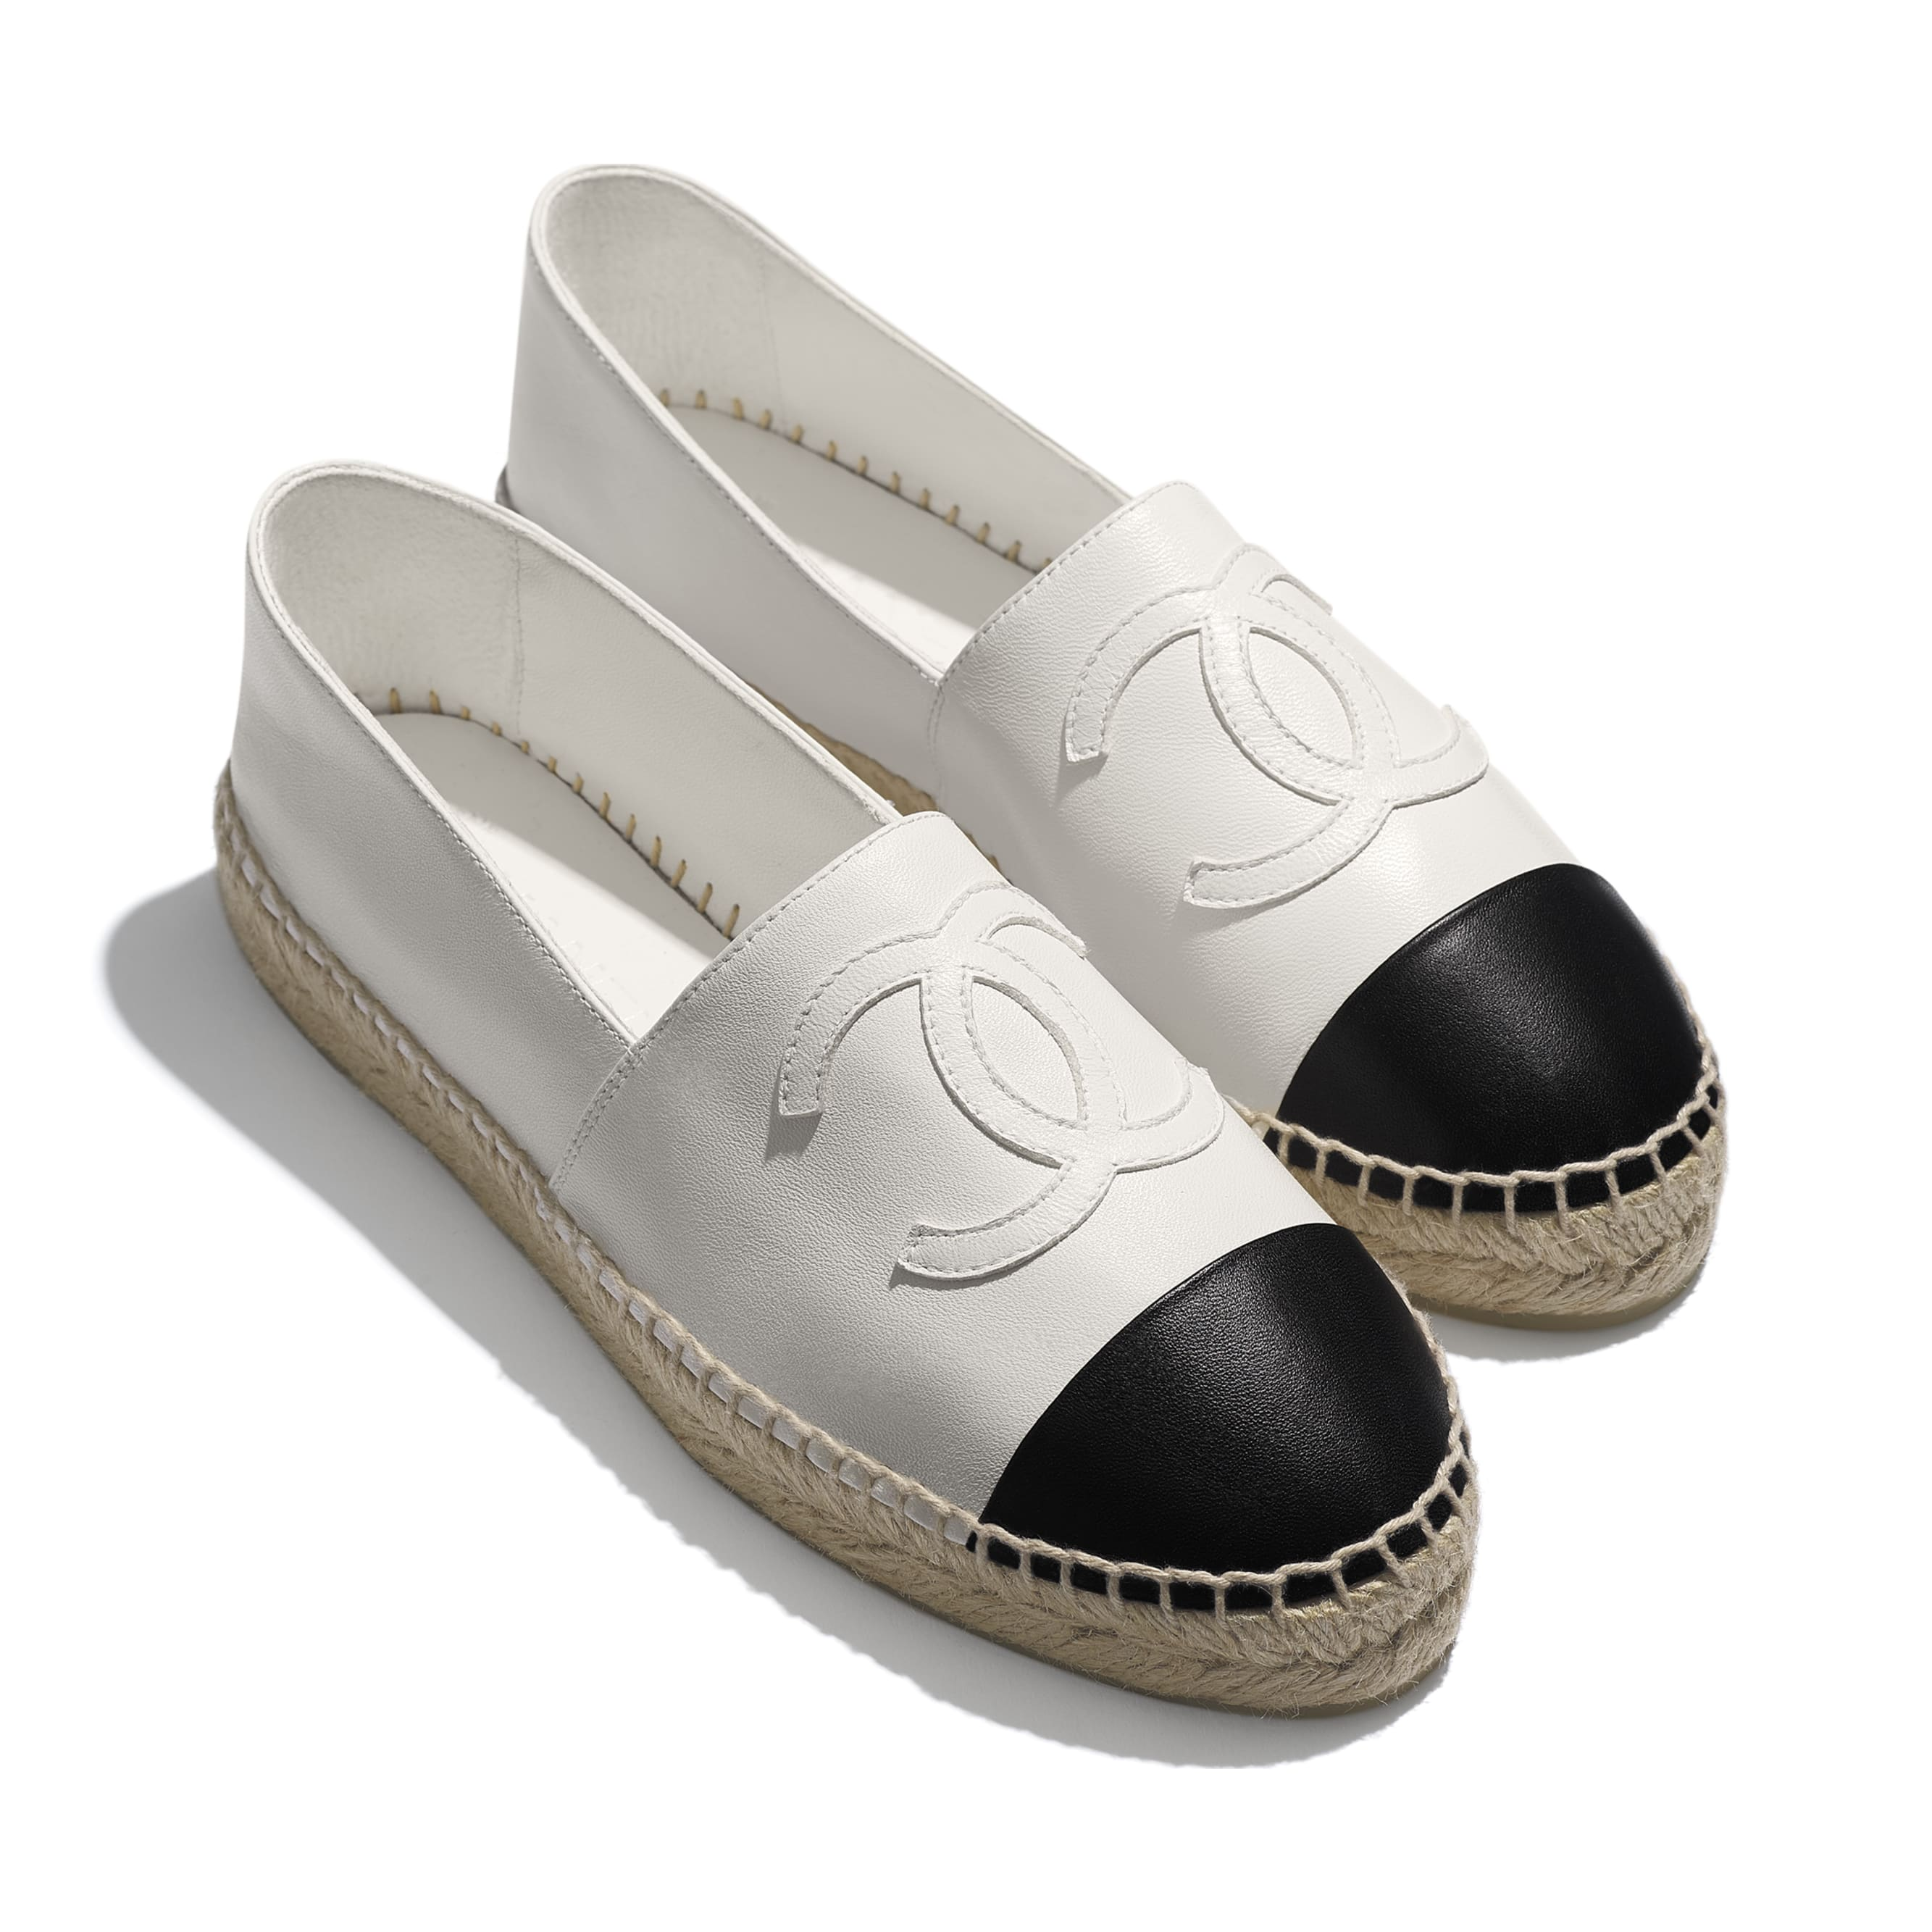 Espadrilles - White & Black - Lambskin - CHANEL - Extra view - see standard sized version